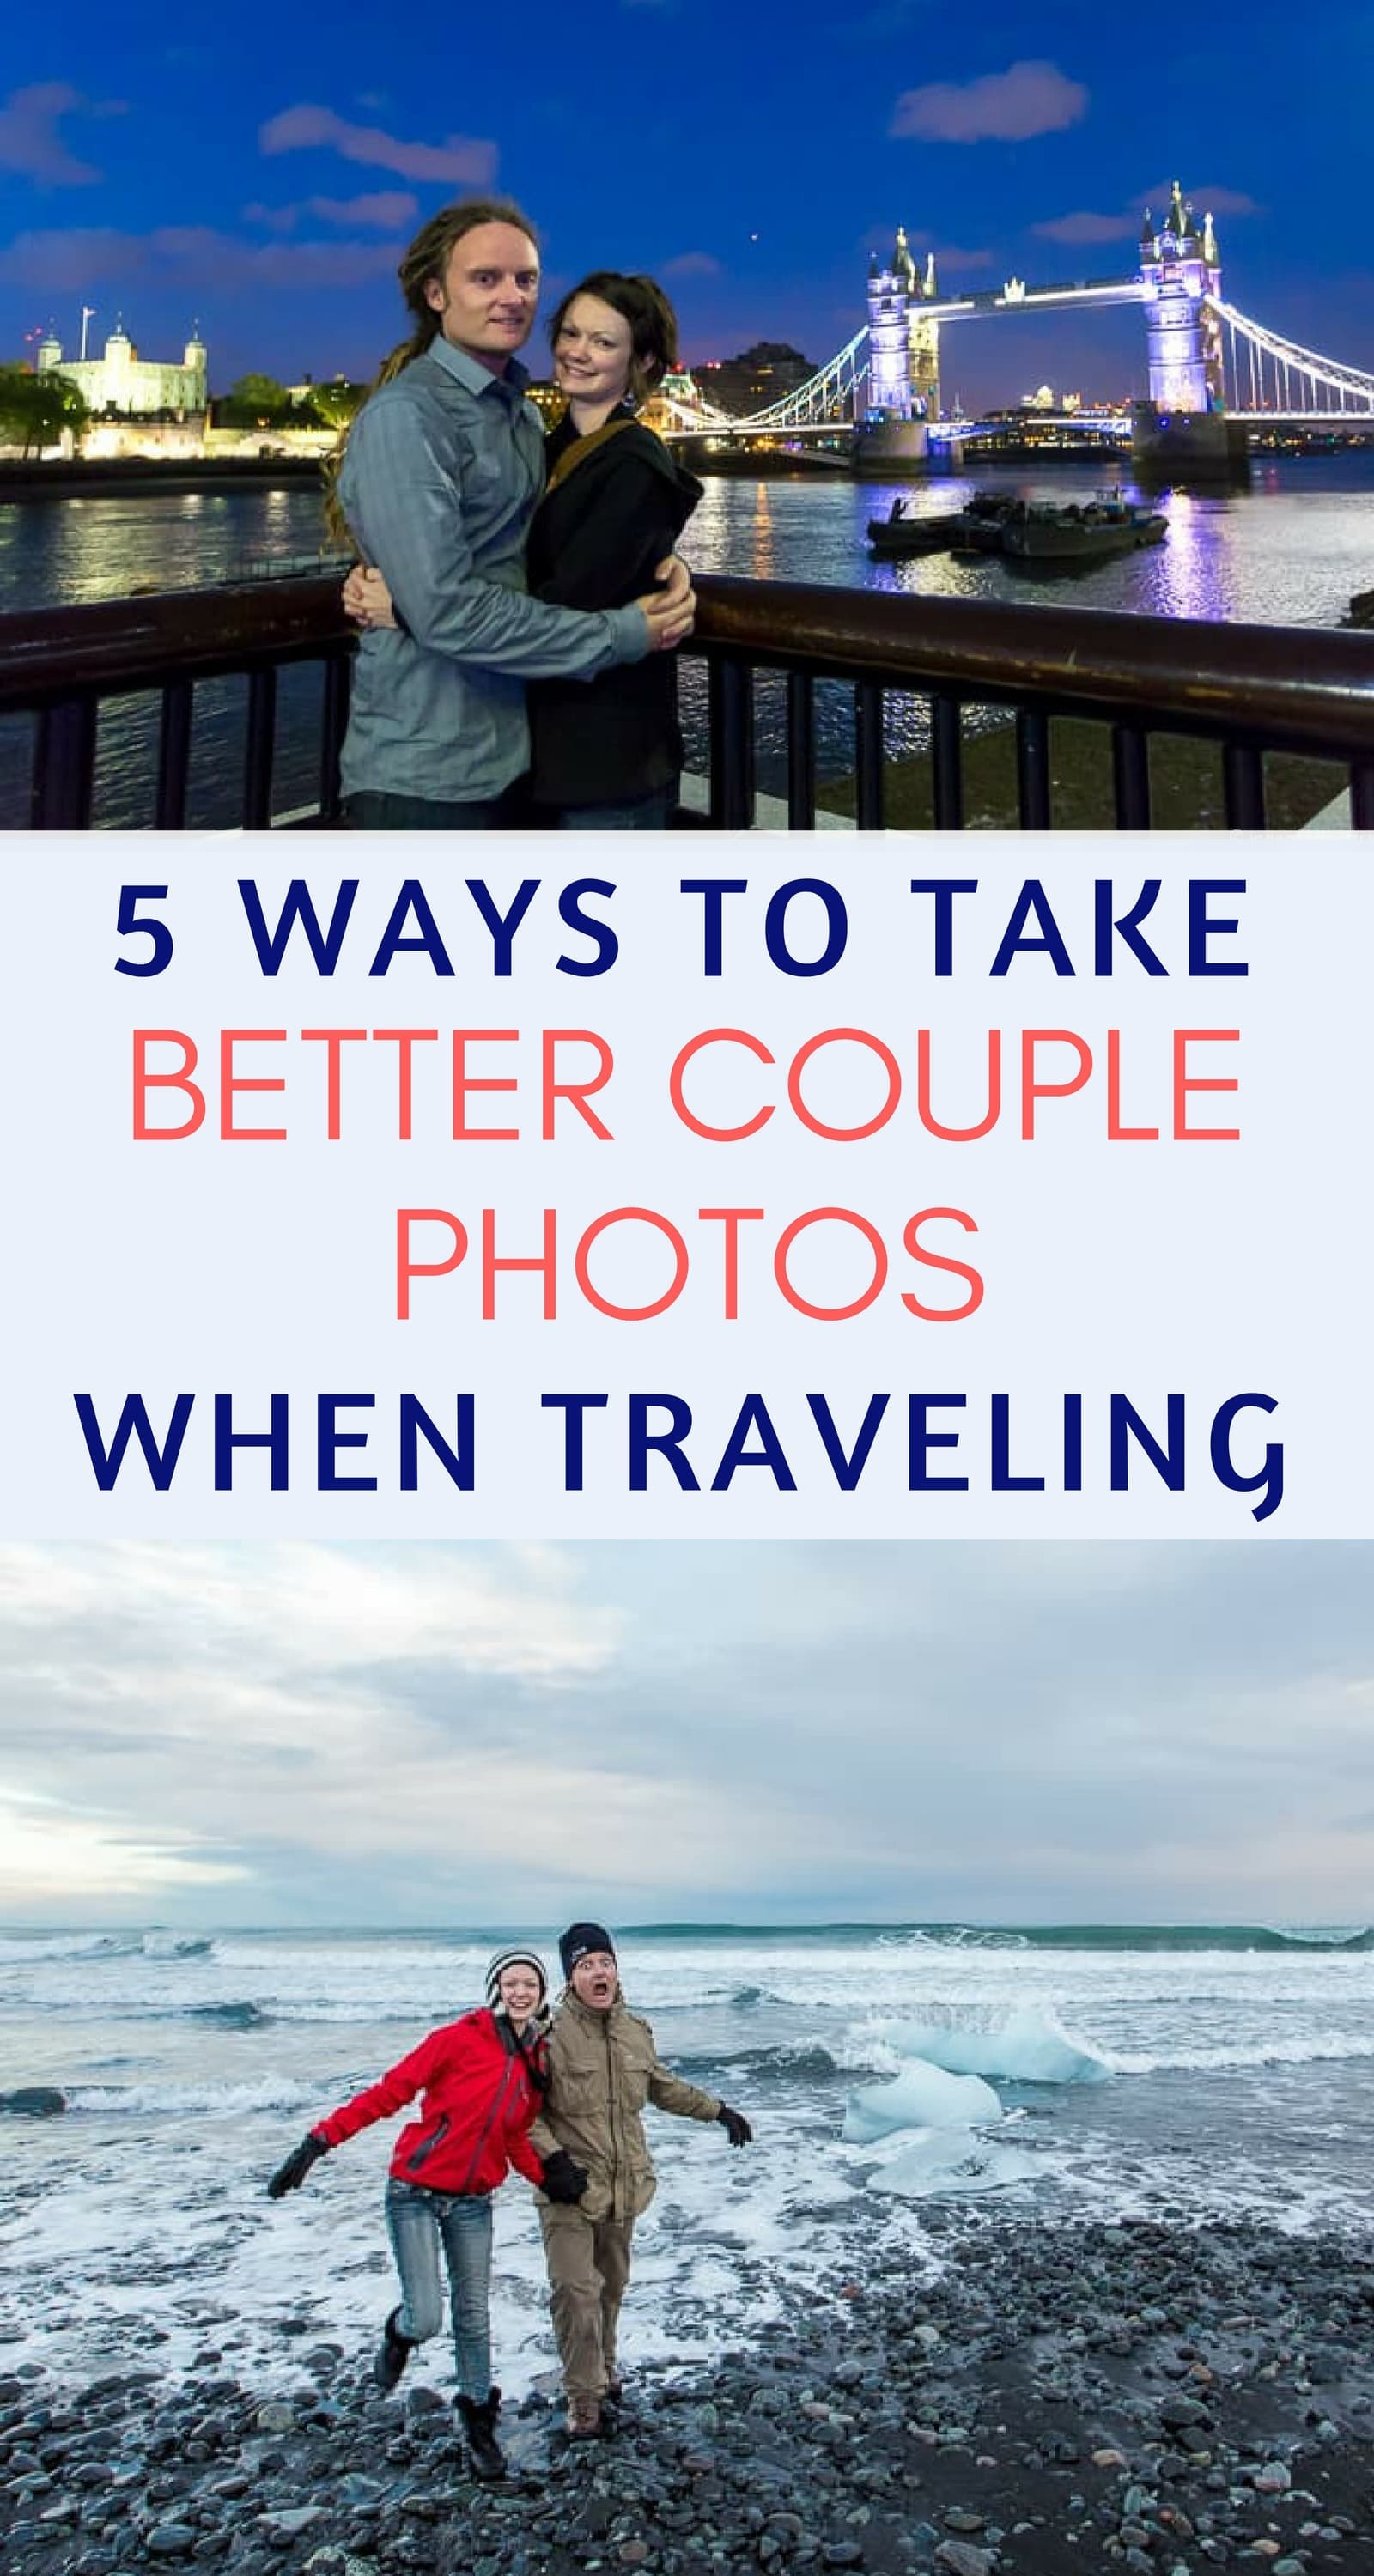 Our guide to taking great couple photos while traveling, sharing all the methods and strategies we have used. We cover everything from selfie sticks to tripods to hiring a professional photographer, and we discuss the pros and cons of each option. We then give tips and advice for getting the best travel couple photos while traveling no matter what method you choose. #travelphotography #couplephotos #couplestravel #romantictravel #photography